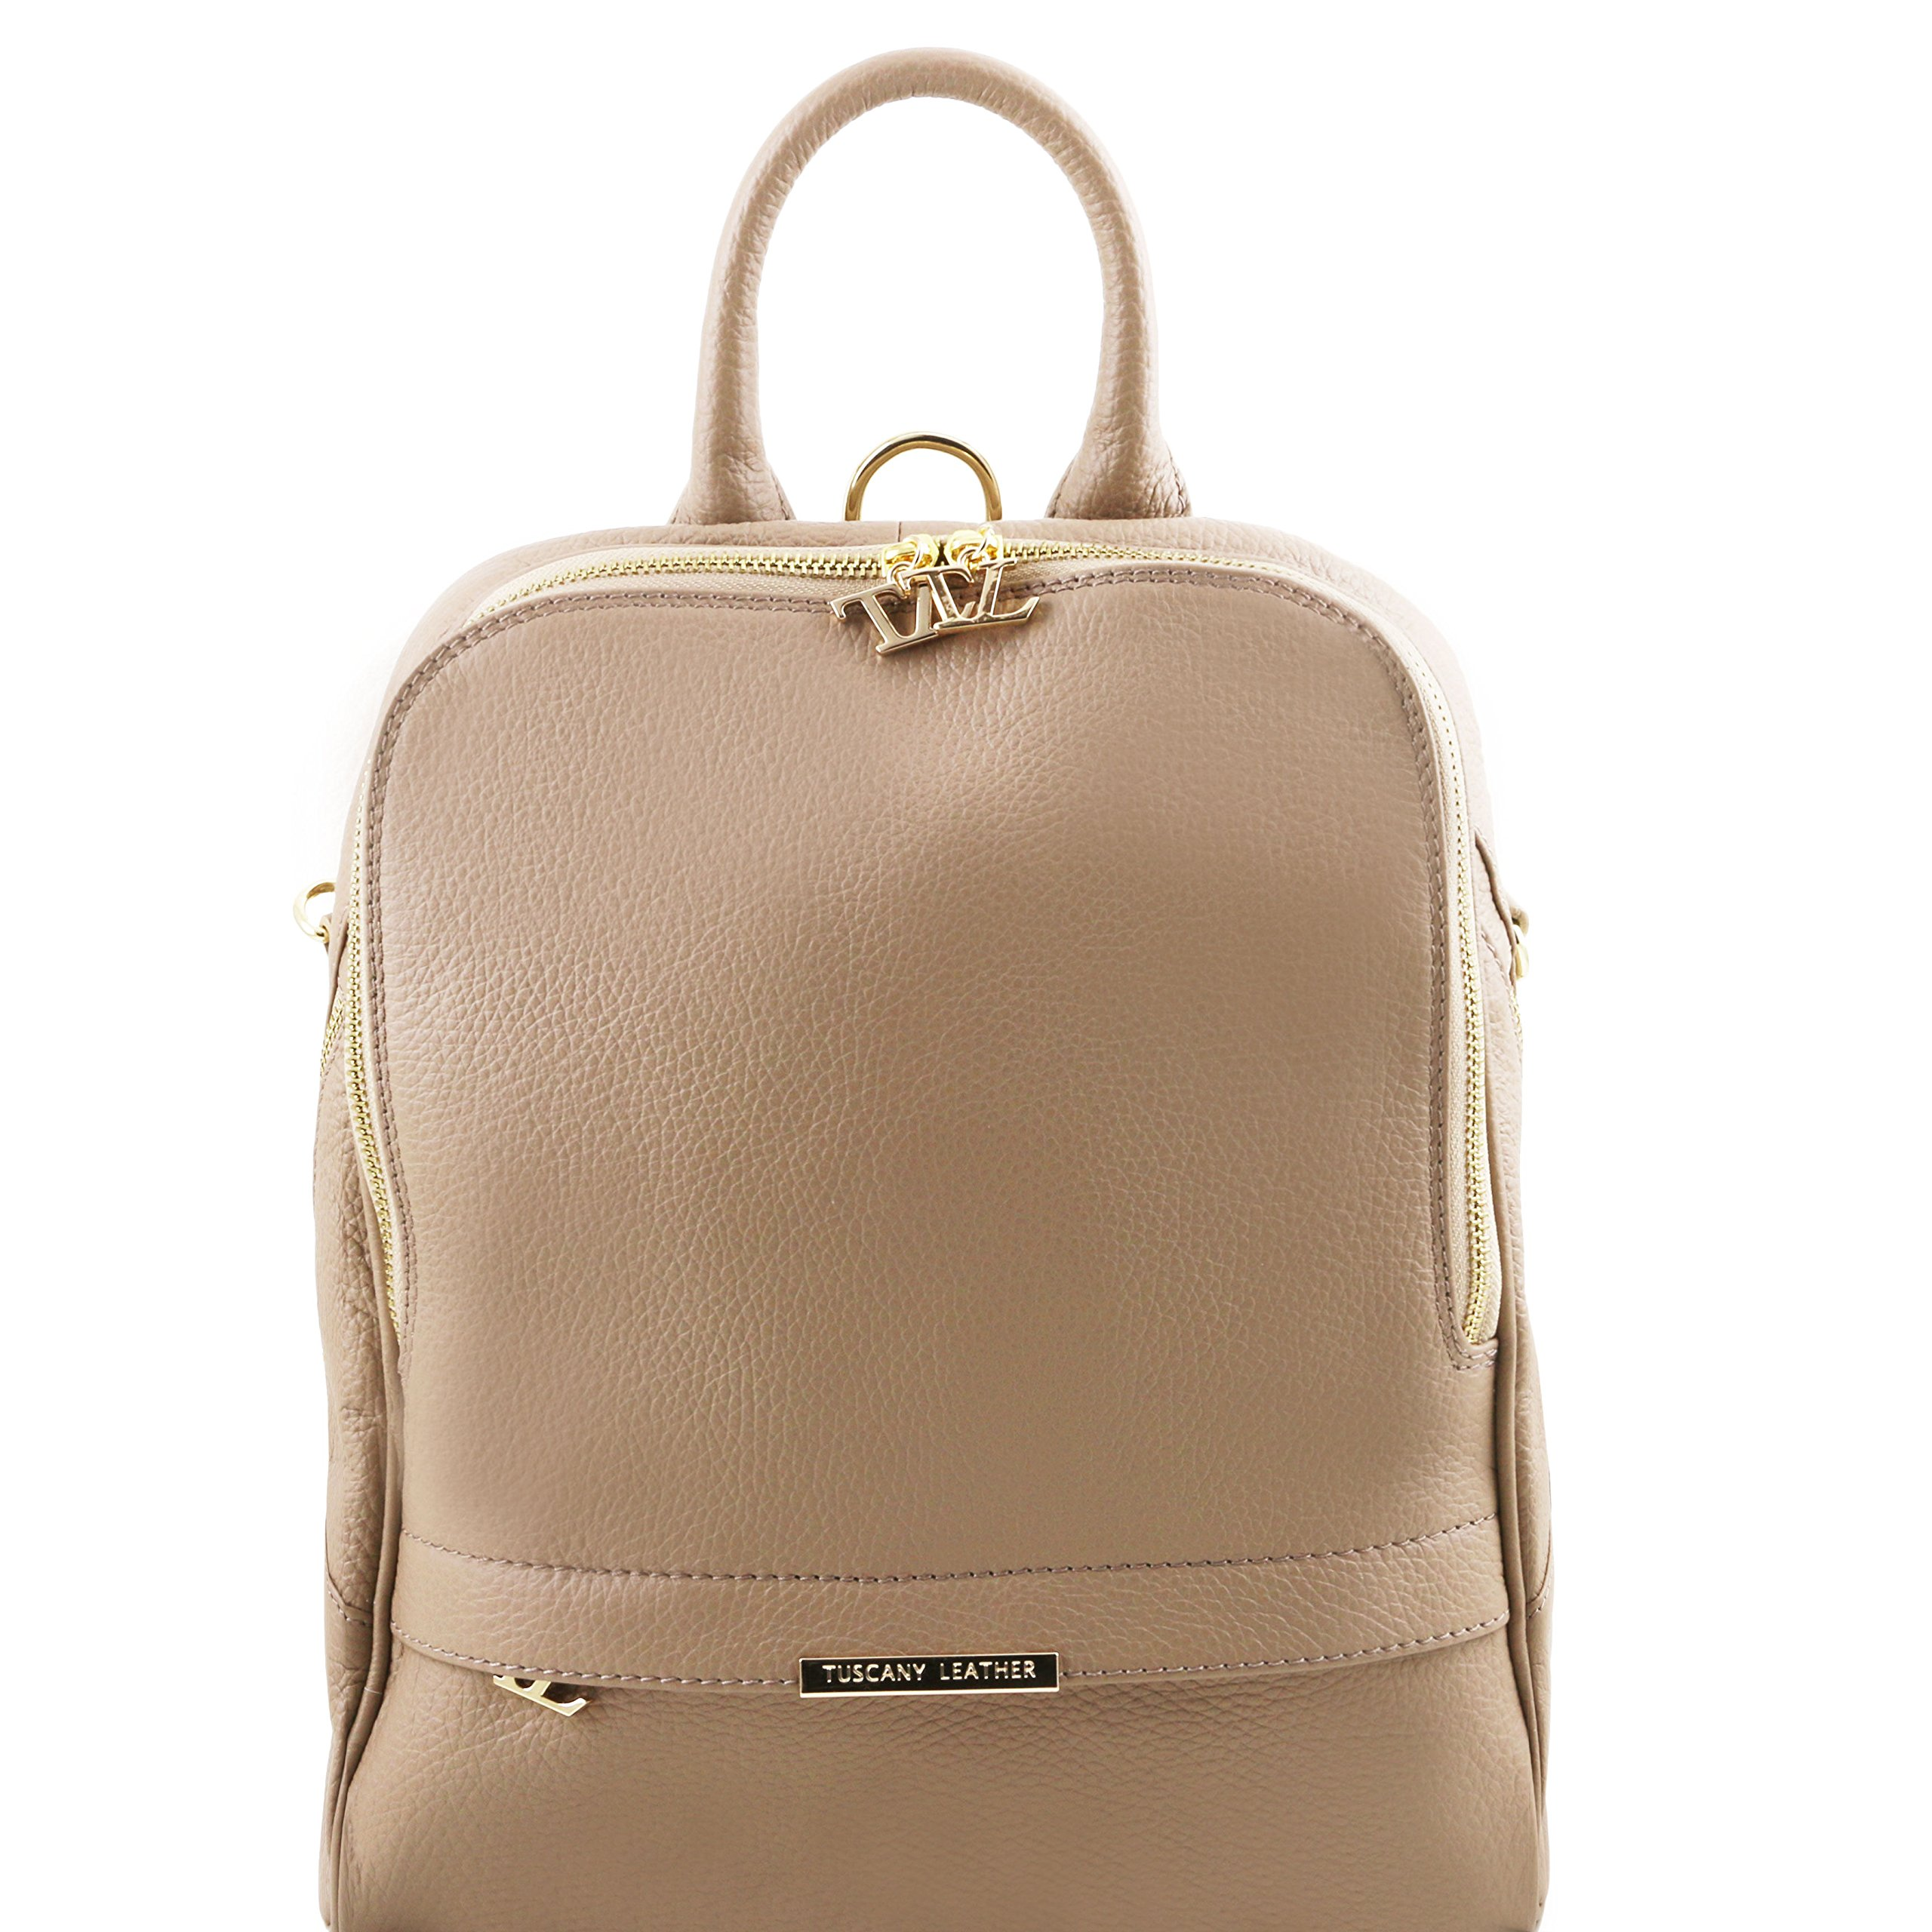 Tuscany Leather TL Bag Soft leather backpack for women Light Taupe